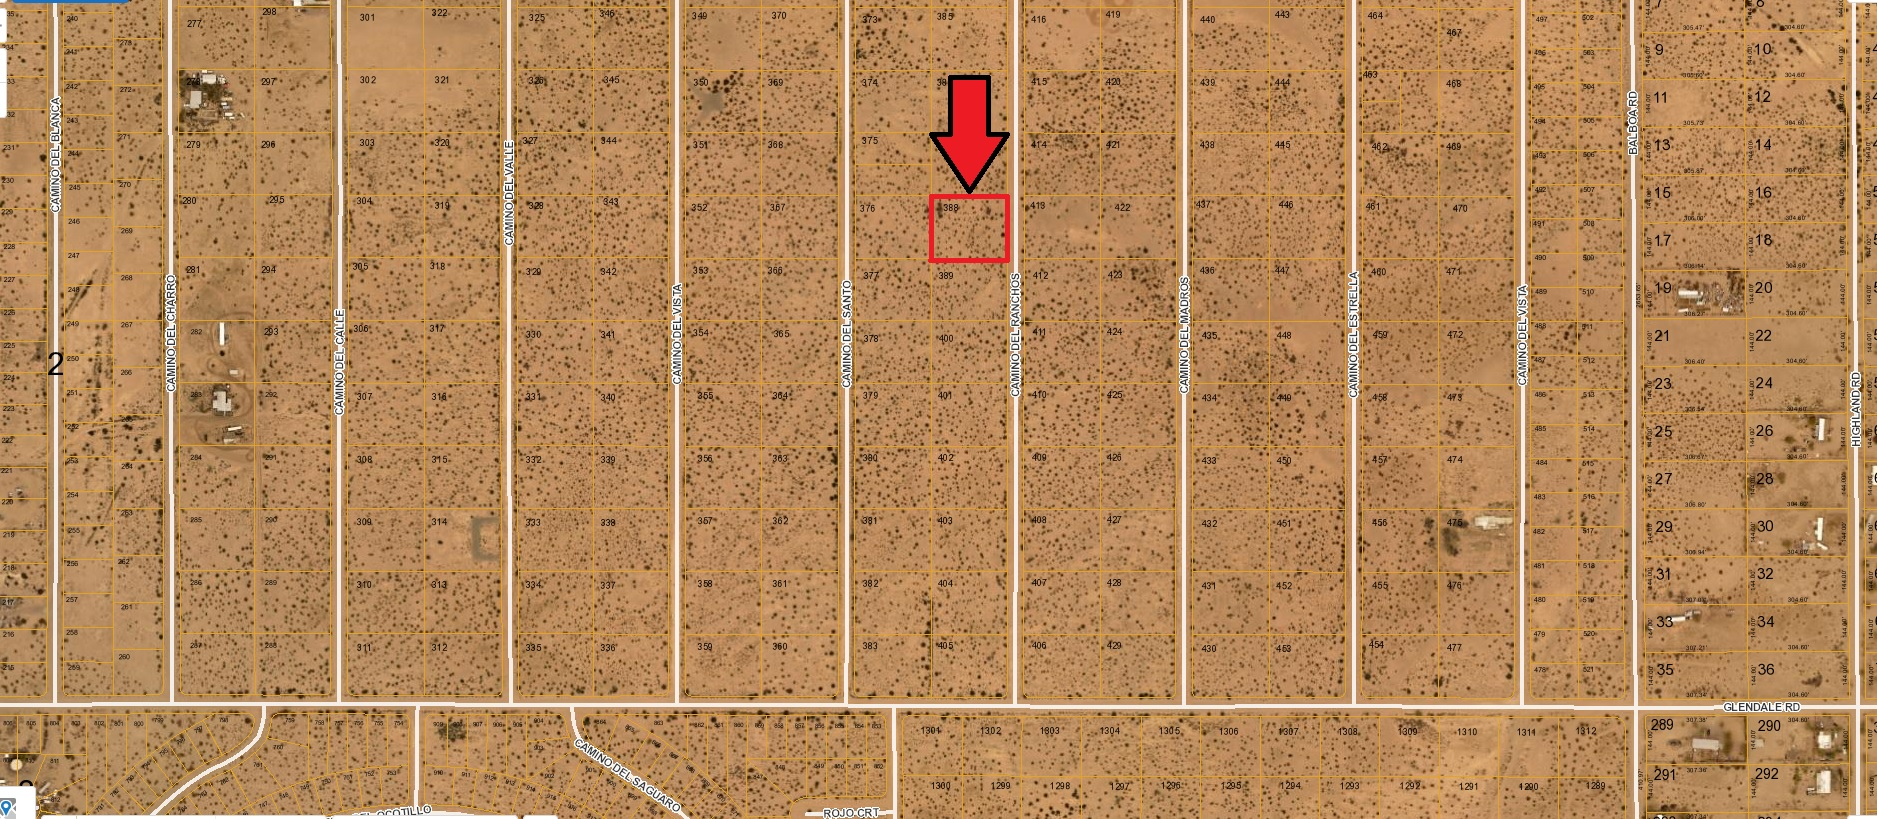 Yuma County – Affordable One Acre Lot for the Snowbird Near Dateland